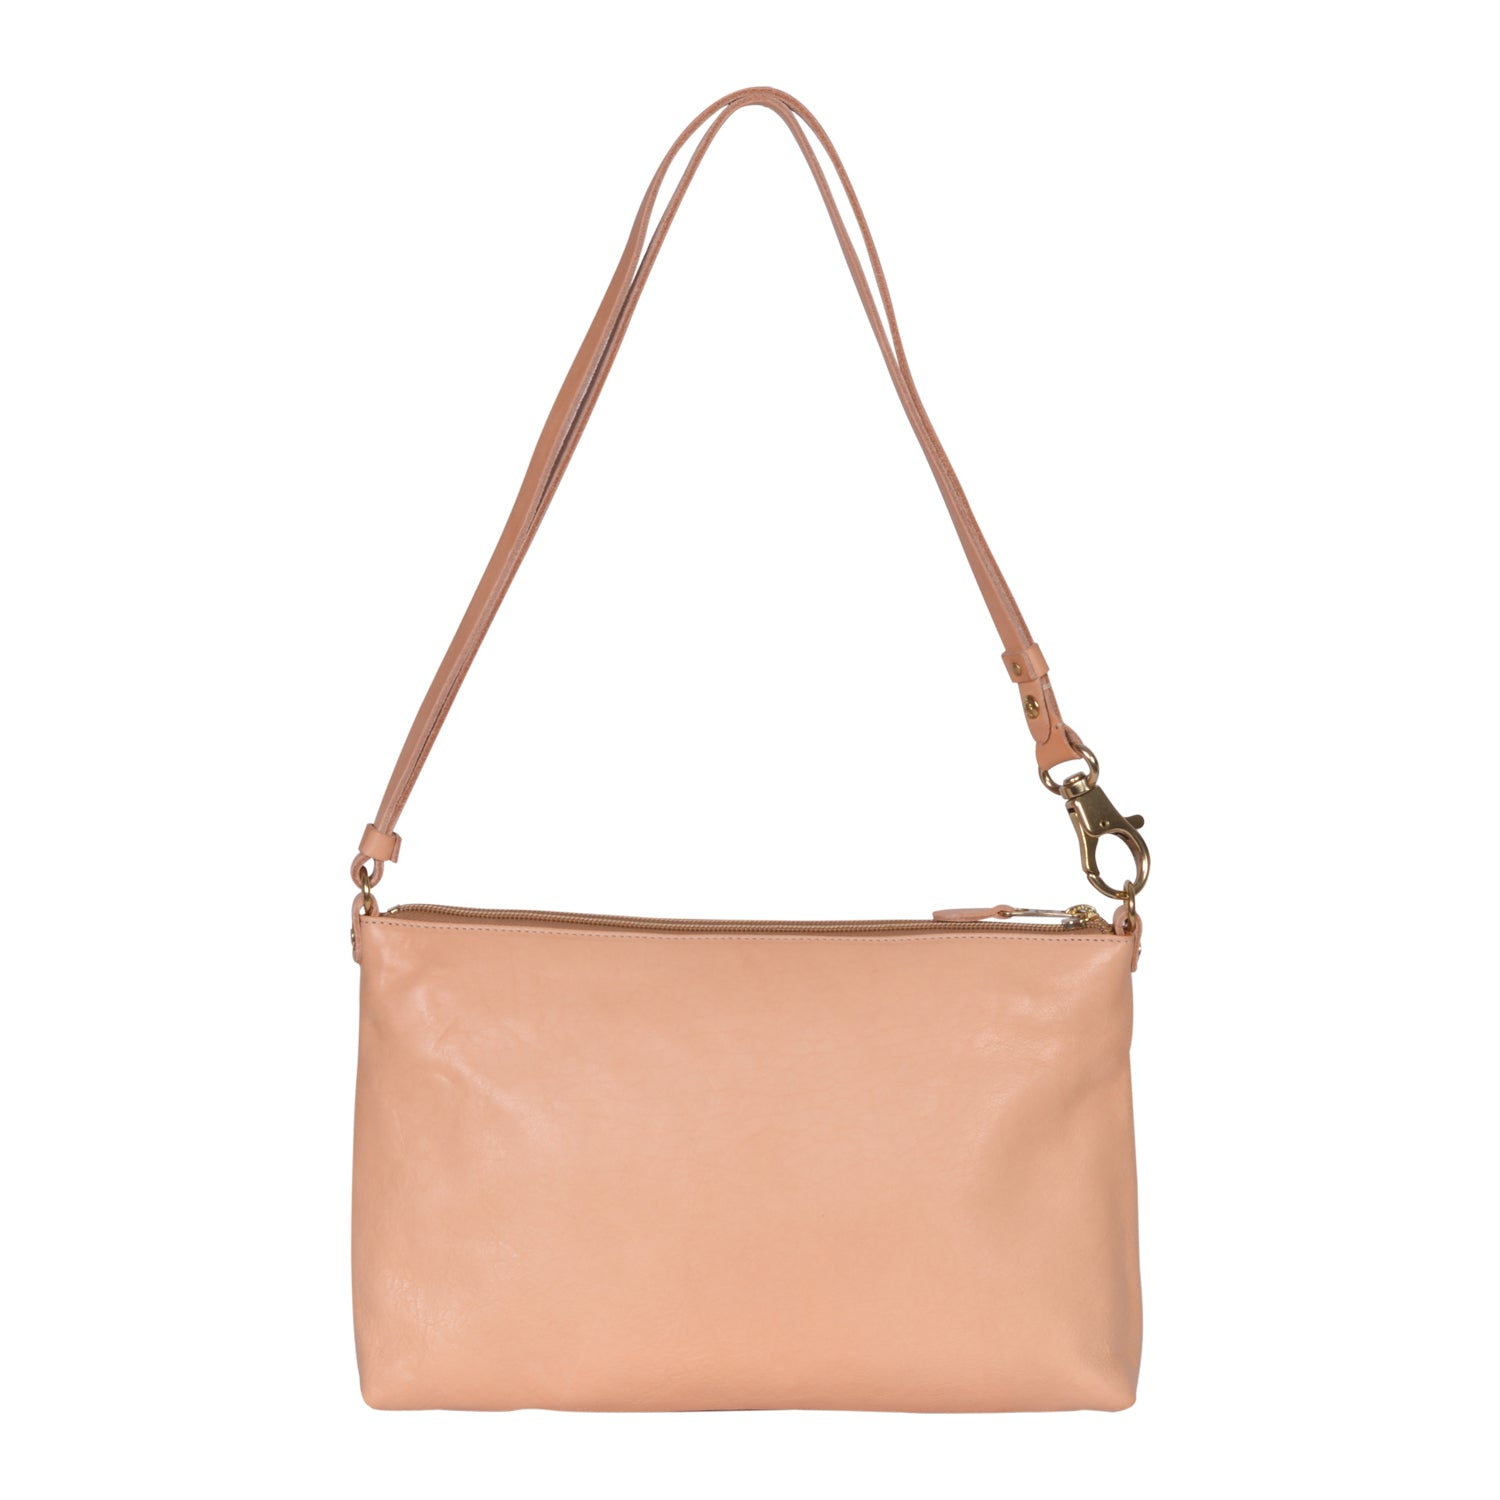 IL BISONTE  WOMAN'S  SHOULDER BAG  IN BEIGE COWHIDE LEATHER